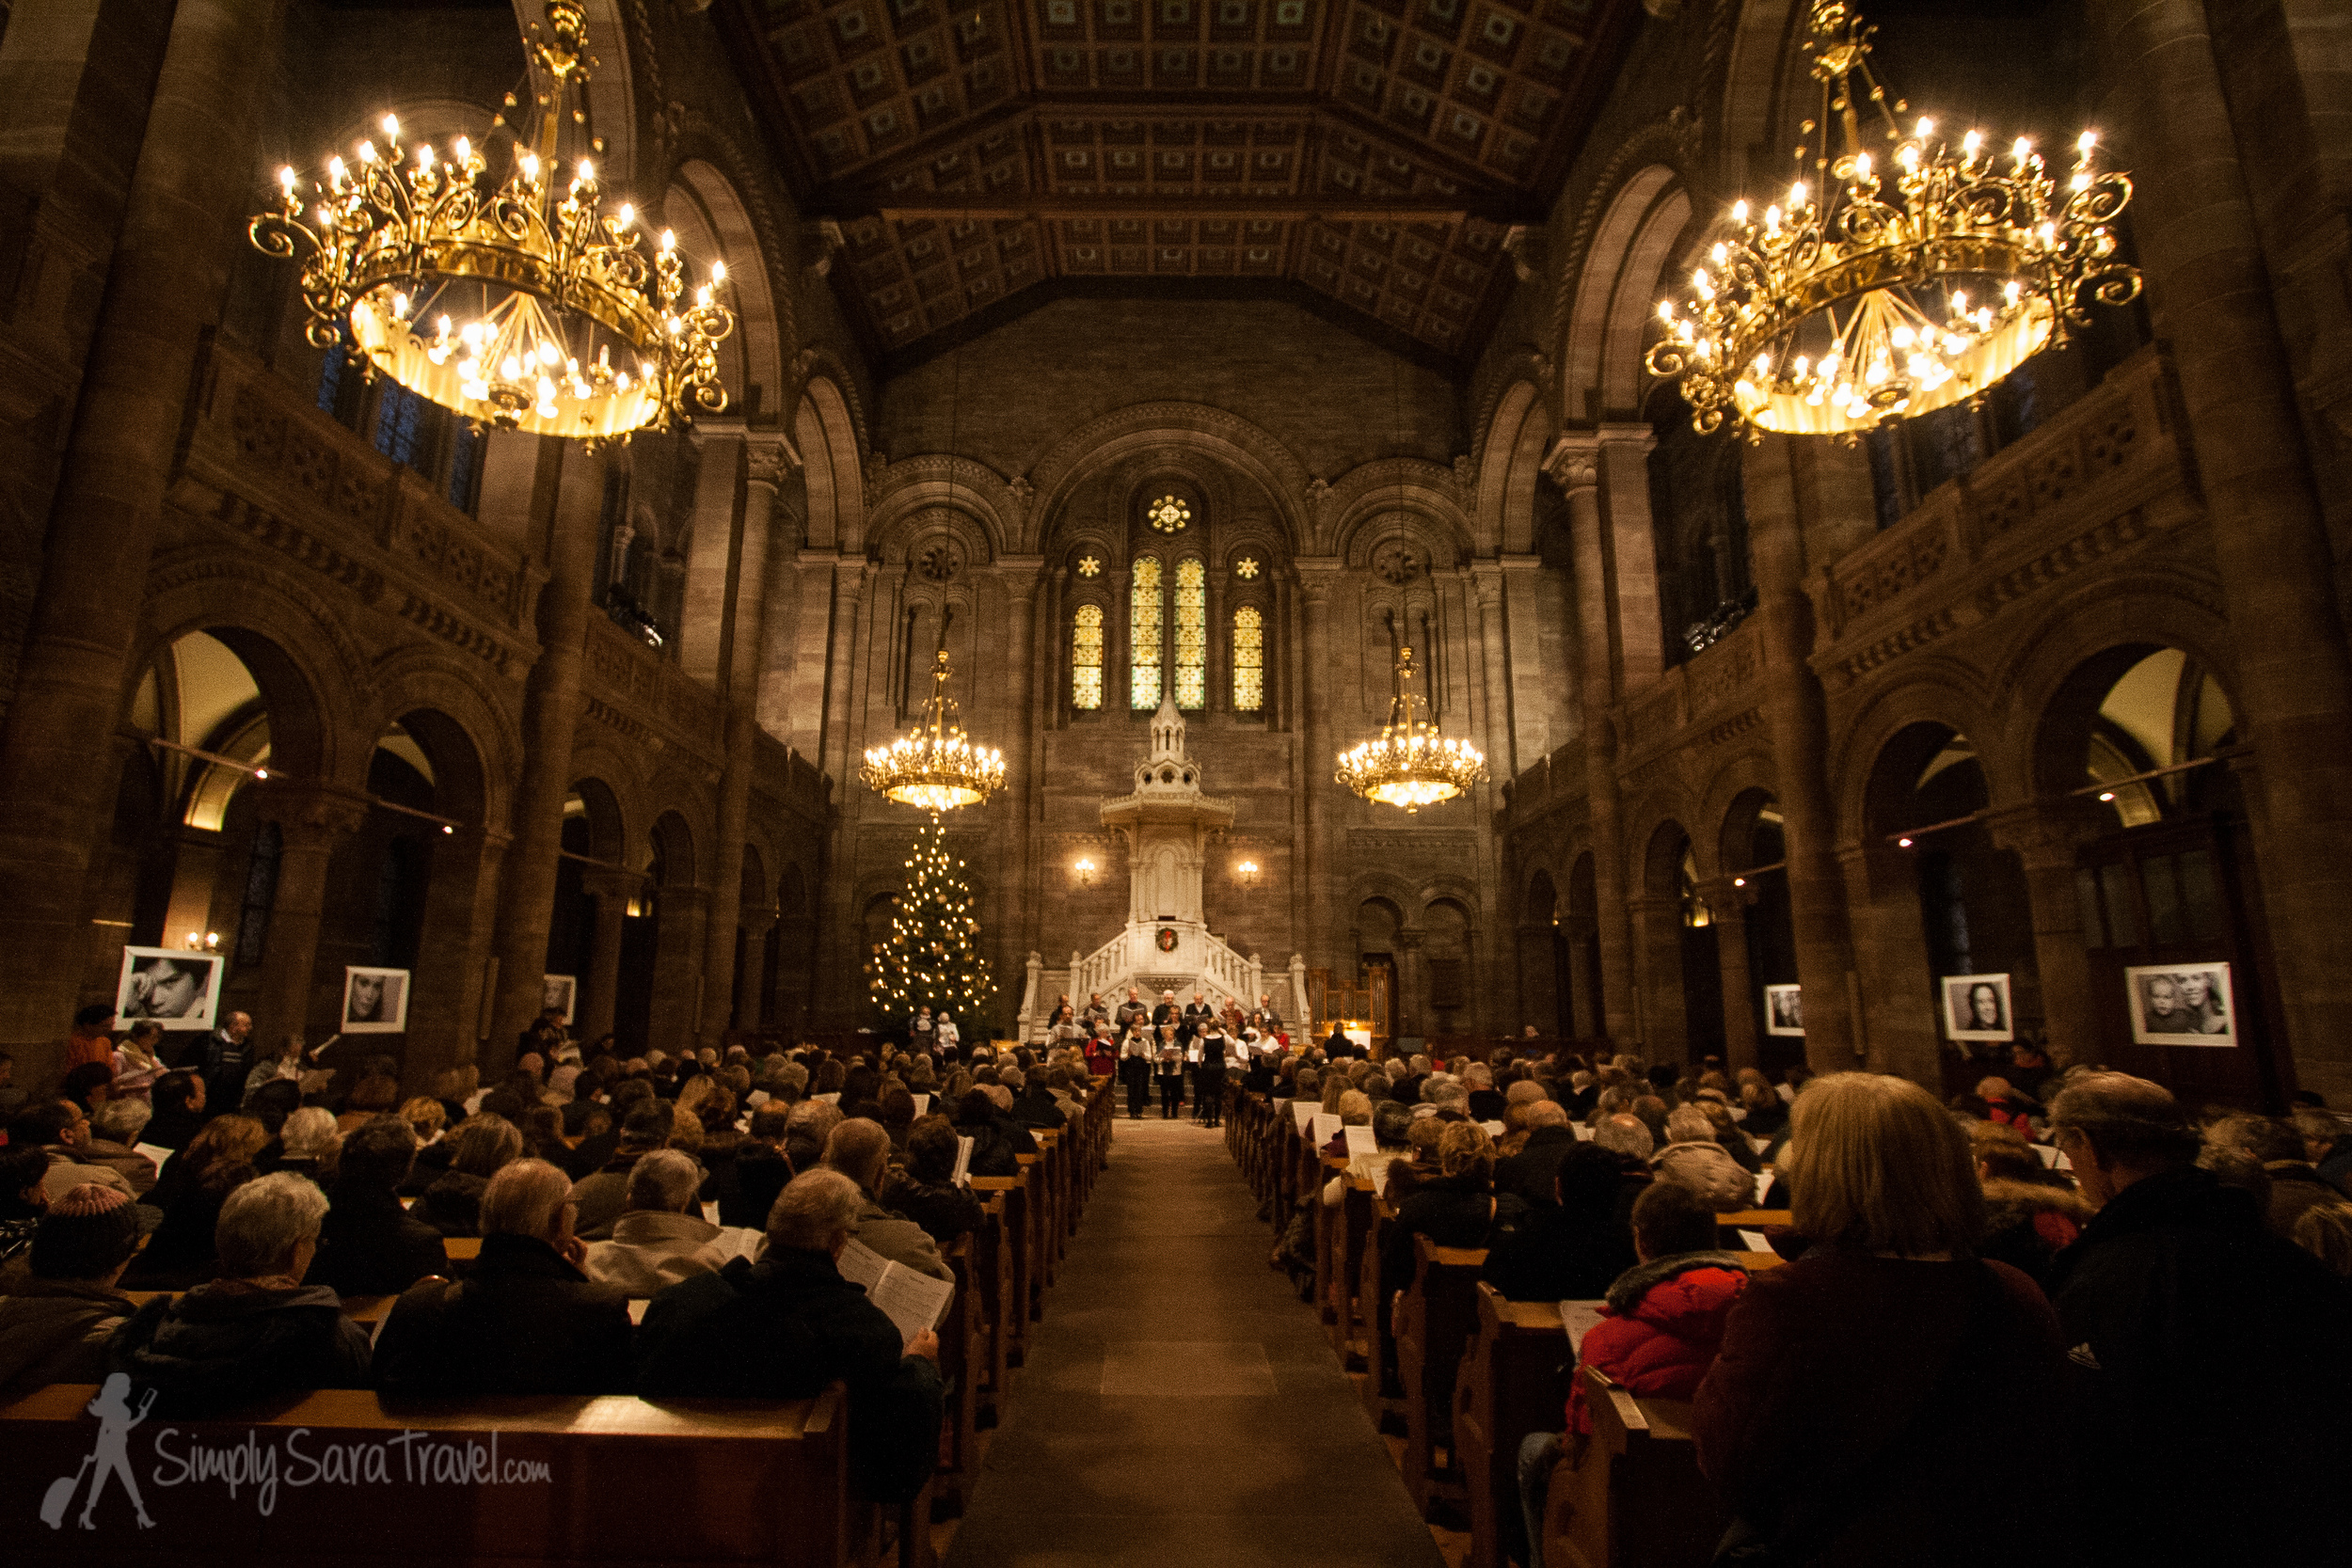 My favorite Christmas concert was at theEglise du Temple Neuf and included Christmas caroling in both French and German.